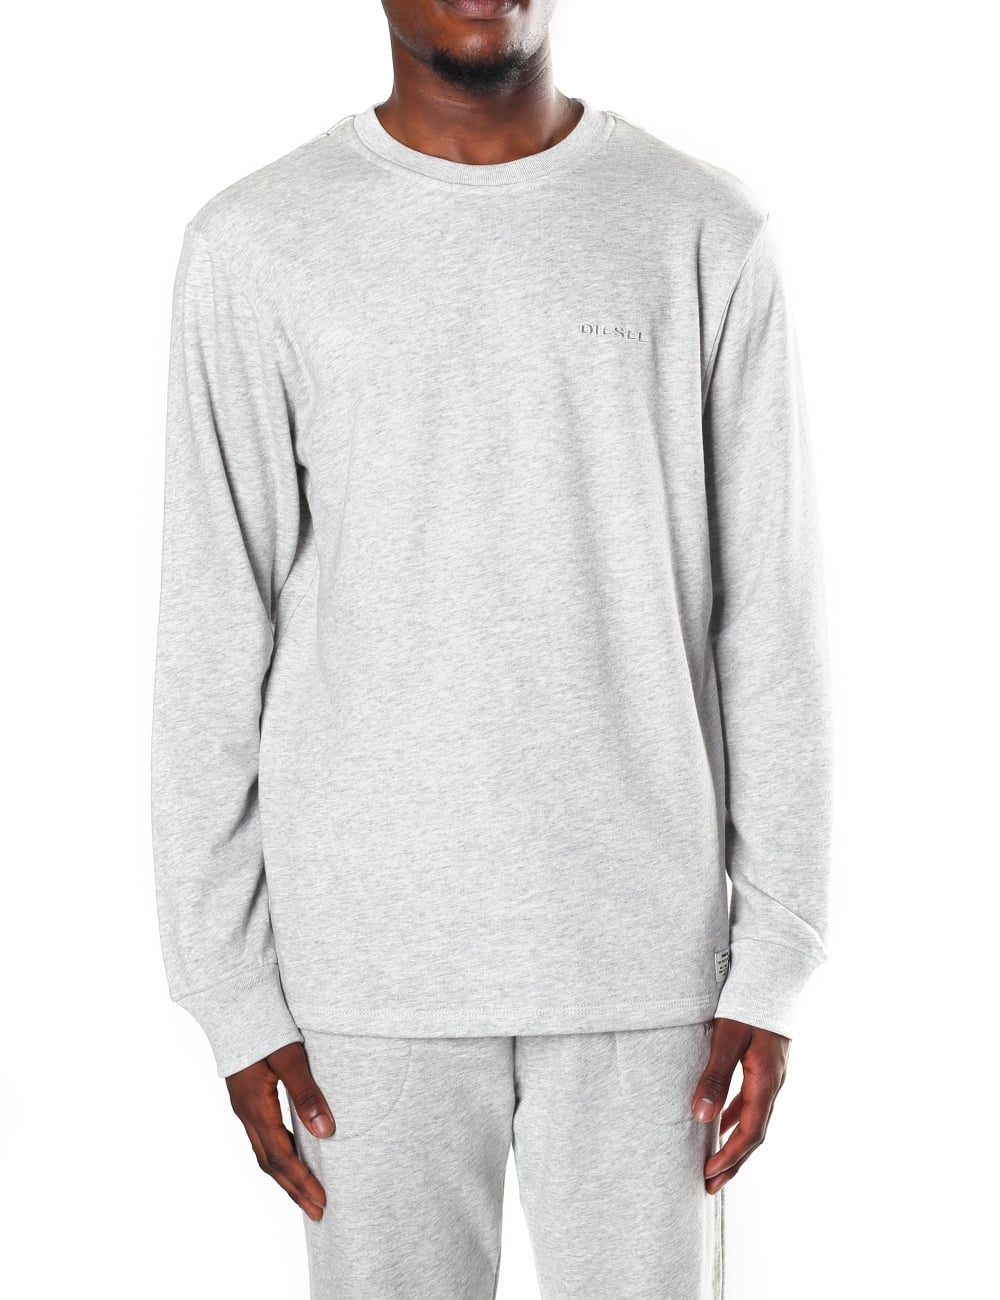 6423e79564fb Diesel Men s Umlt-Willy Crew Neck Sweat Top